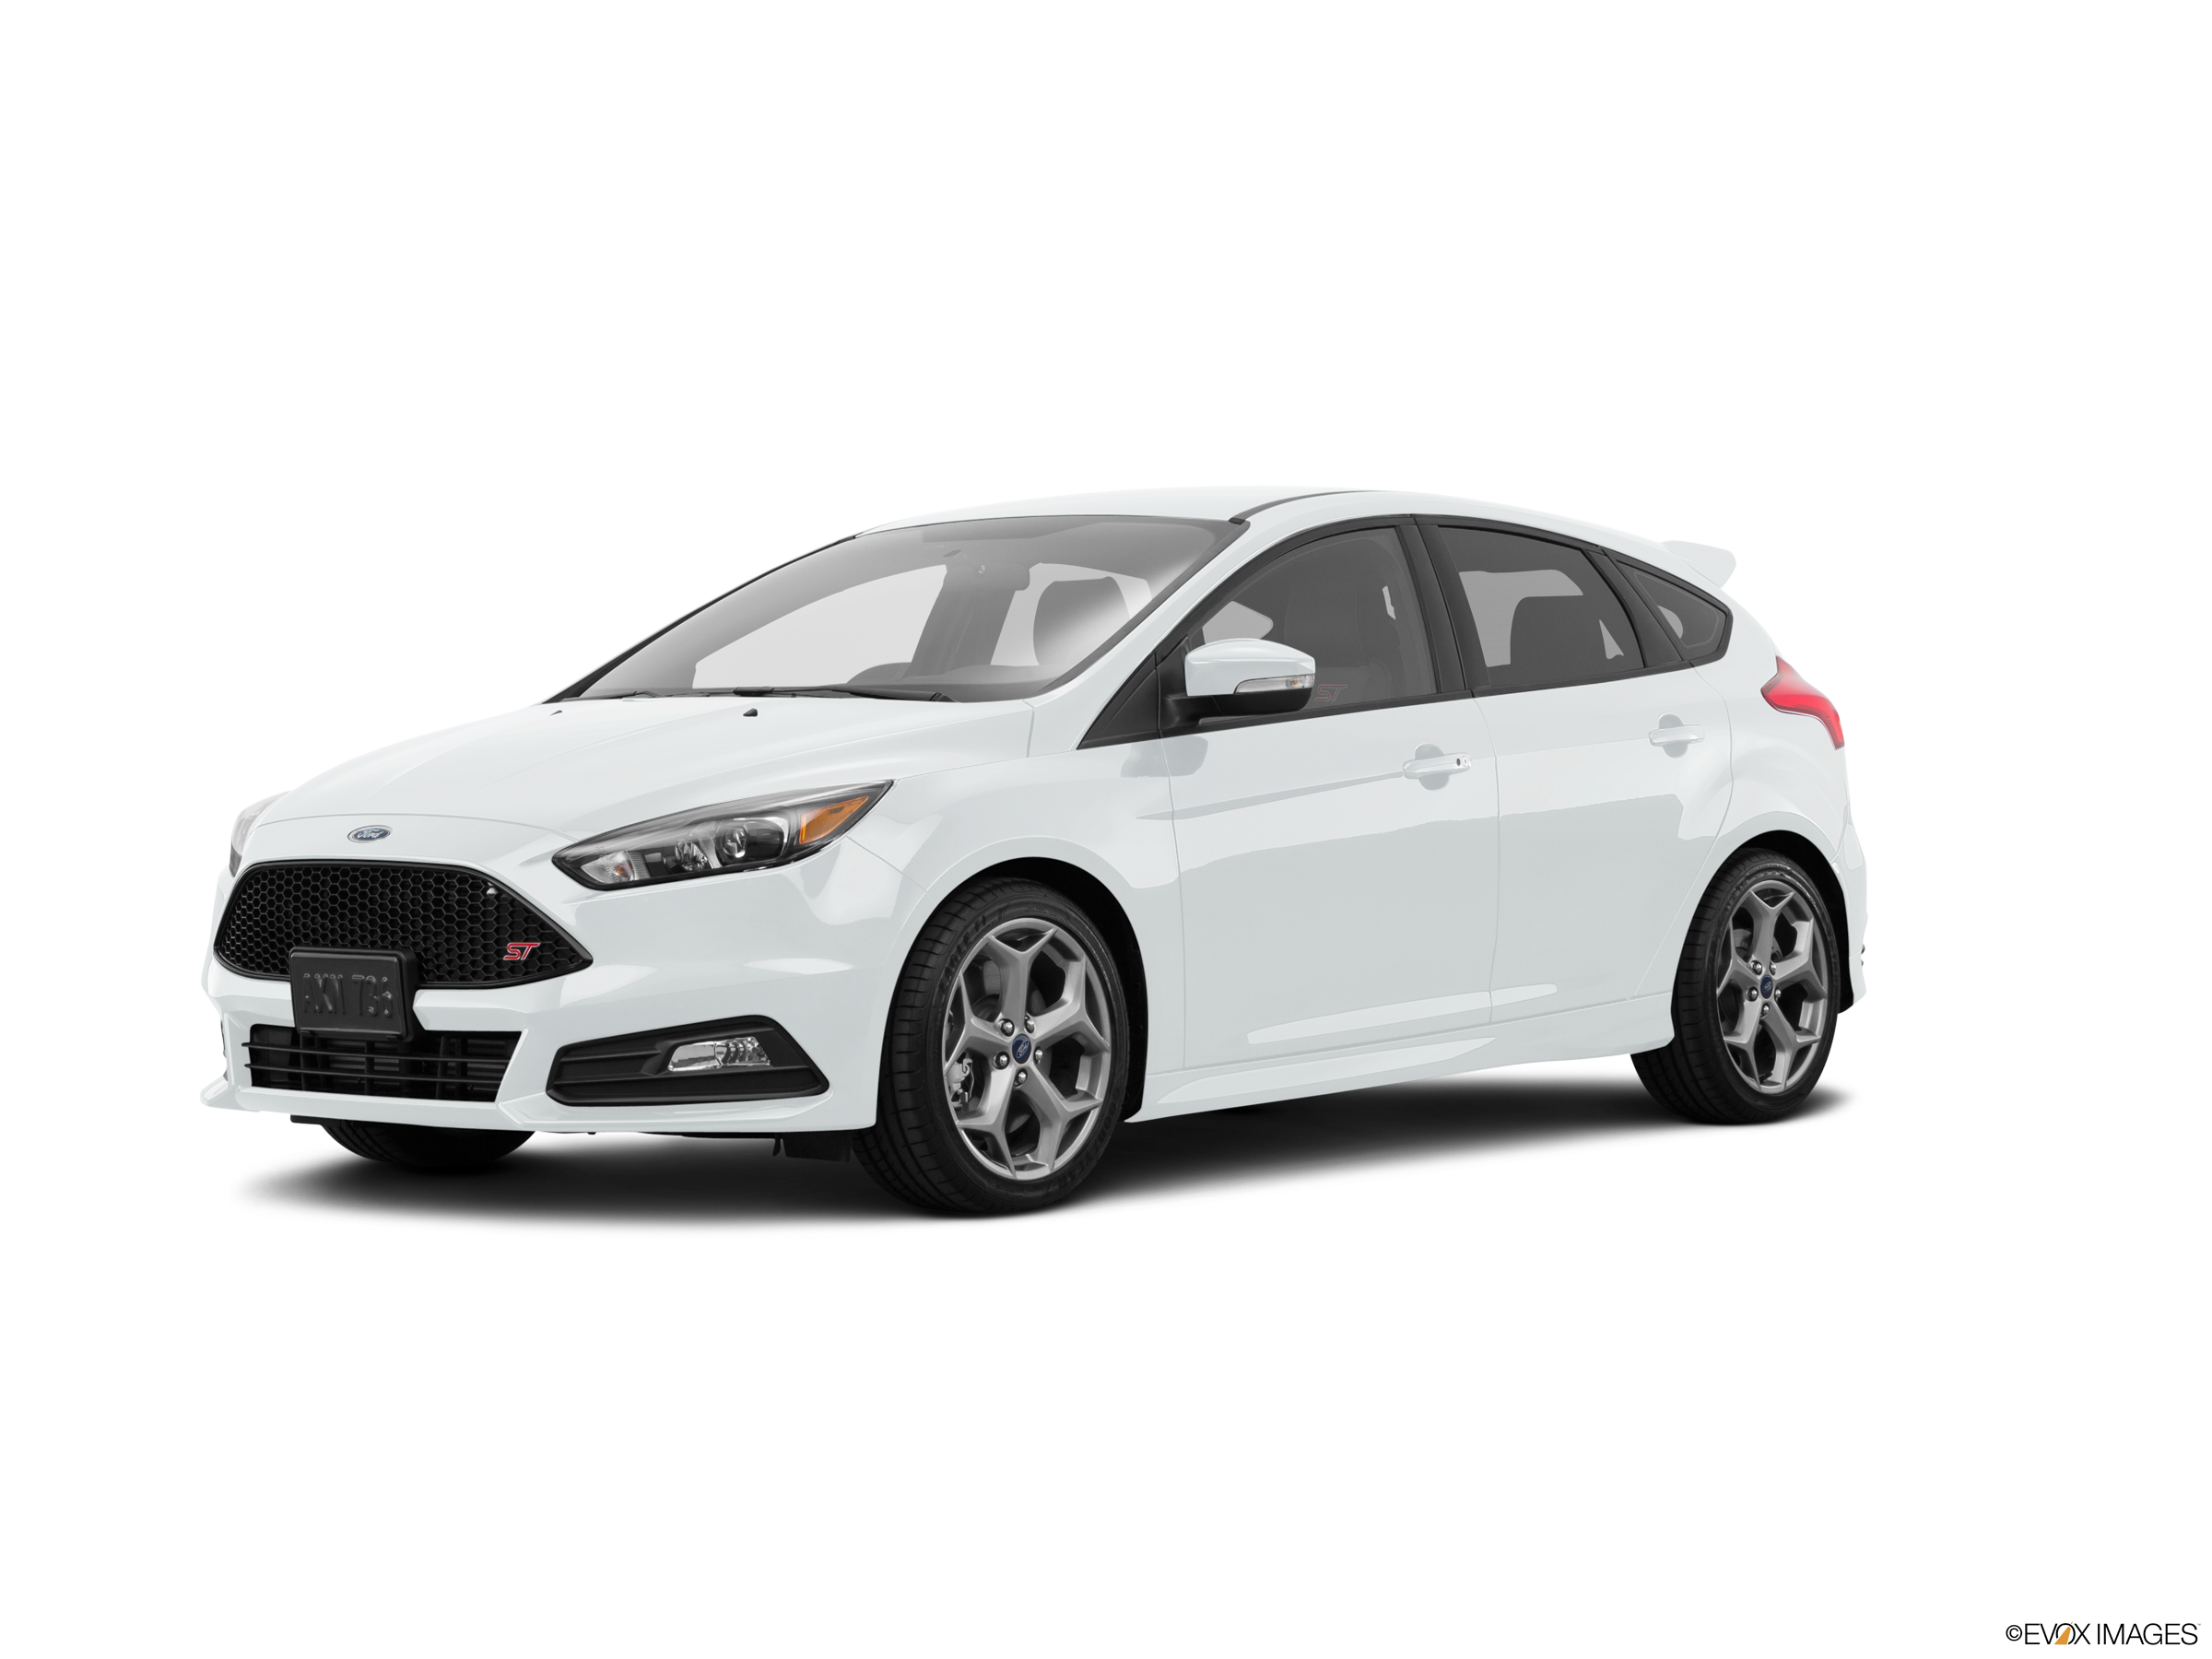 Most Popular Hatchbacks of 2018 - 2018 Ford Focus